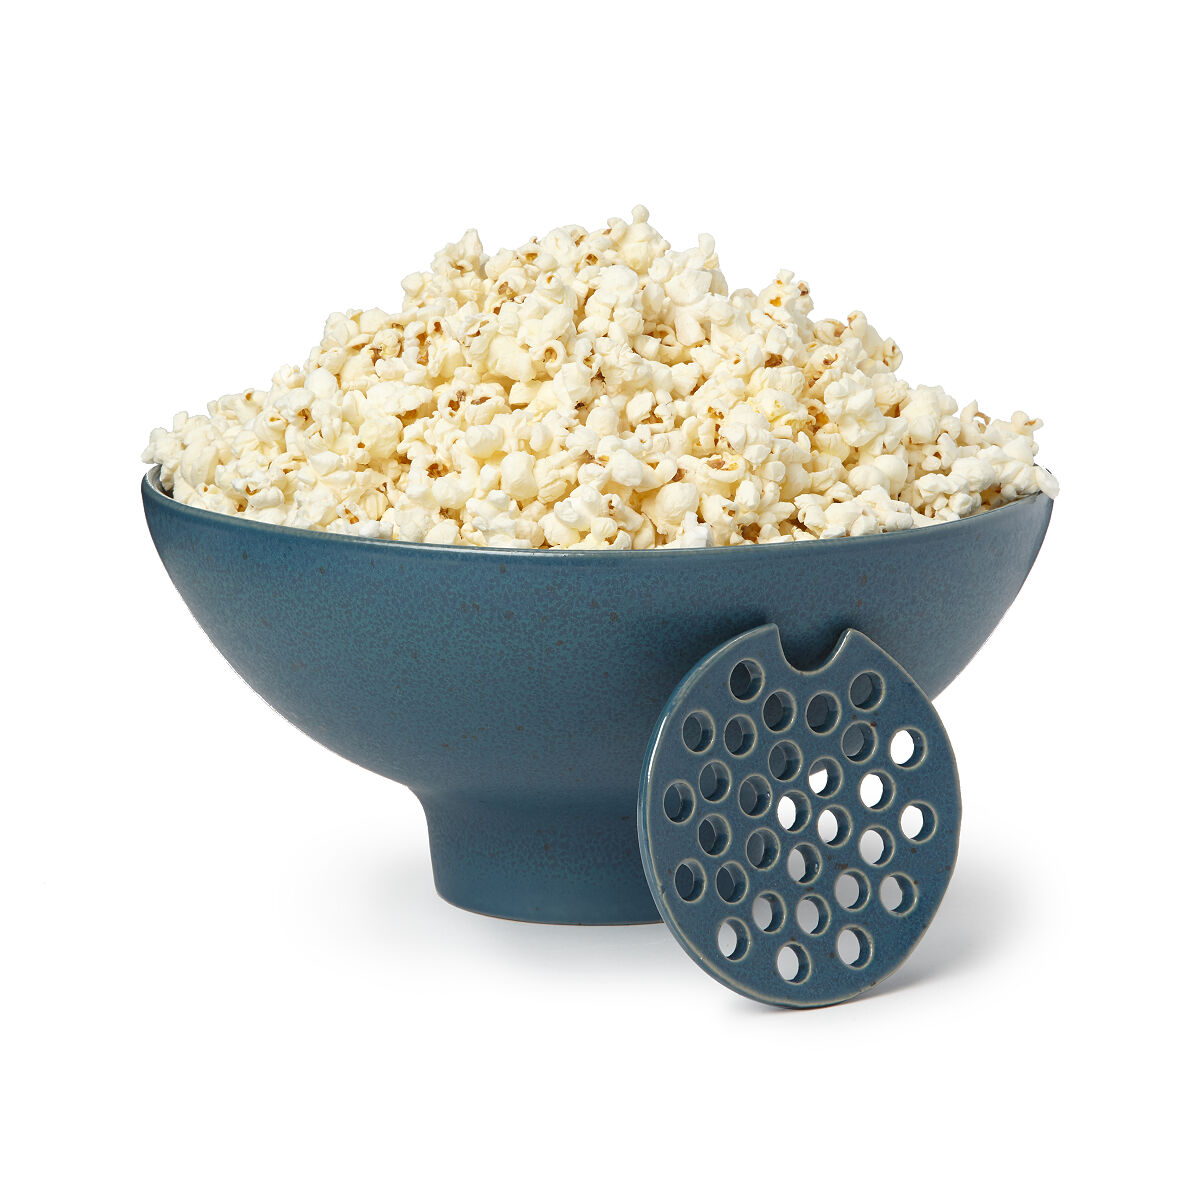 The Popcorn Bowl with Kernel Sifter | popcorn dish | UncommonGoods